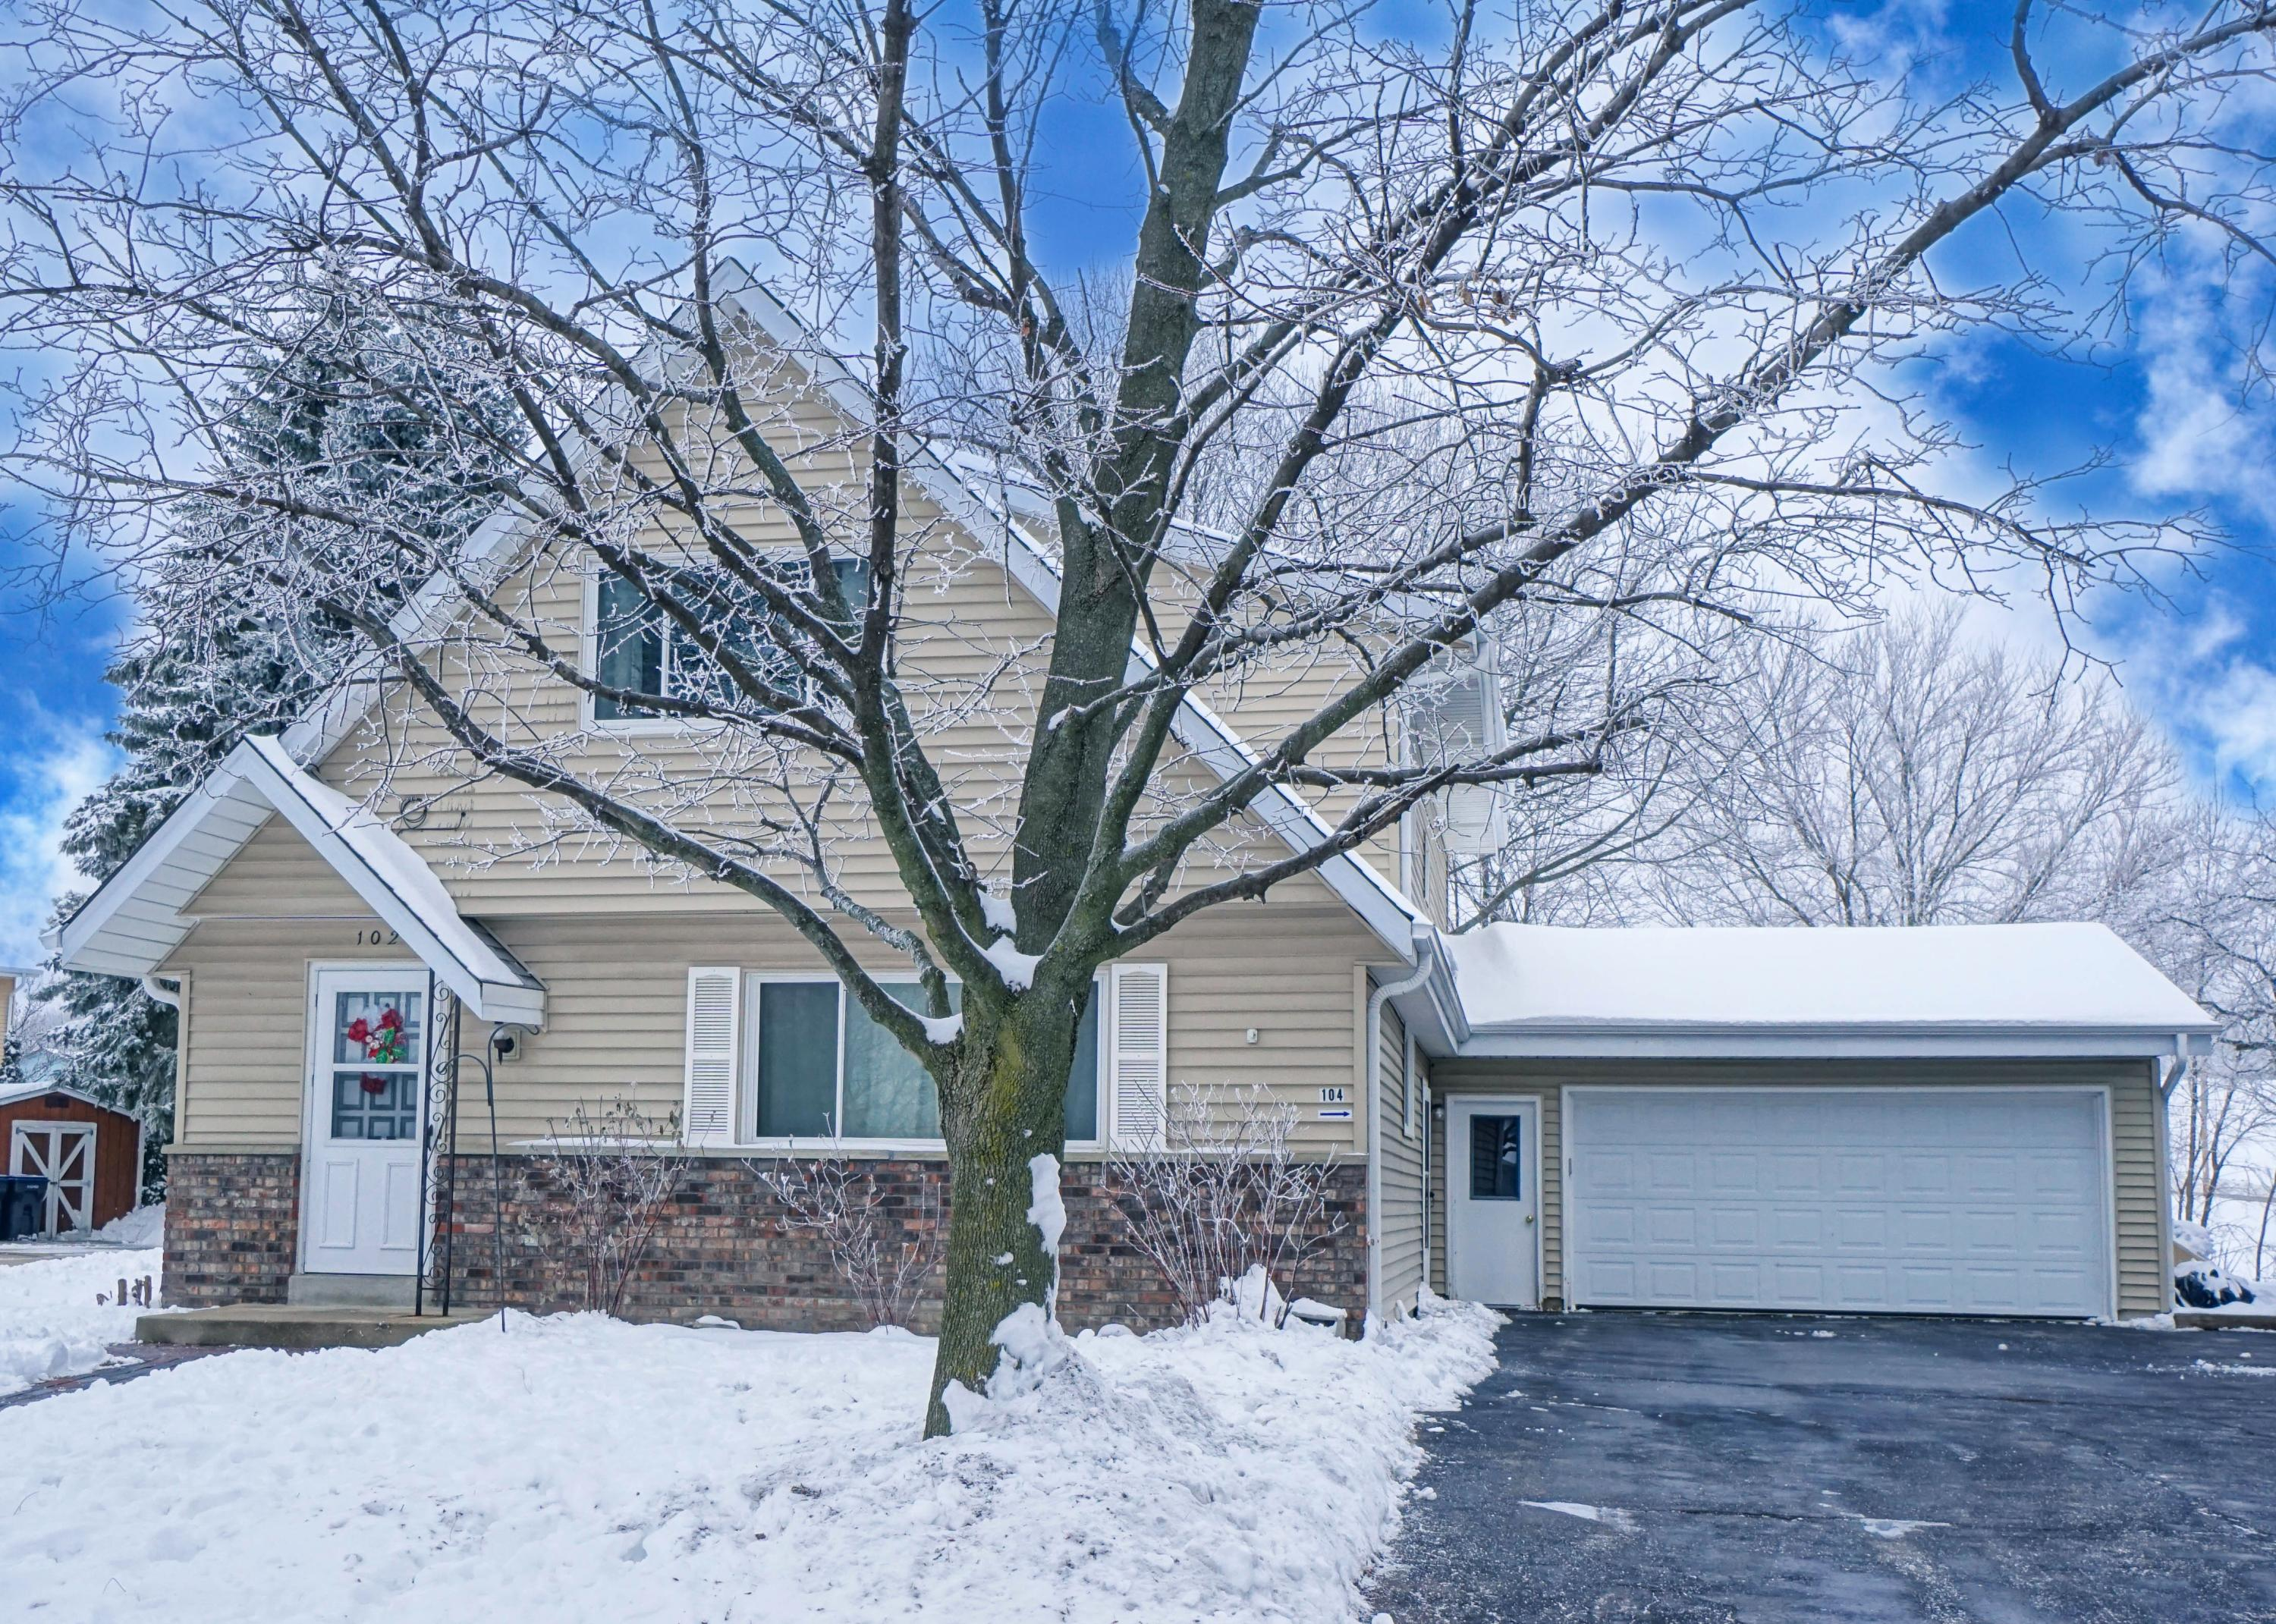 102 Kilps Ct E, Waukesha, Wisconsin 53188, 3 Bedrooms Bedrooms, 6 Rooms Rooms,1 BathroomBathrooms,Two-Family,For Sale,Kilps Ct E,1,1723022